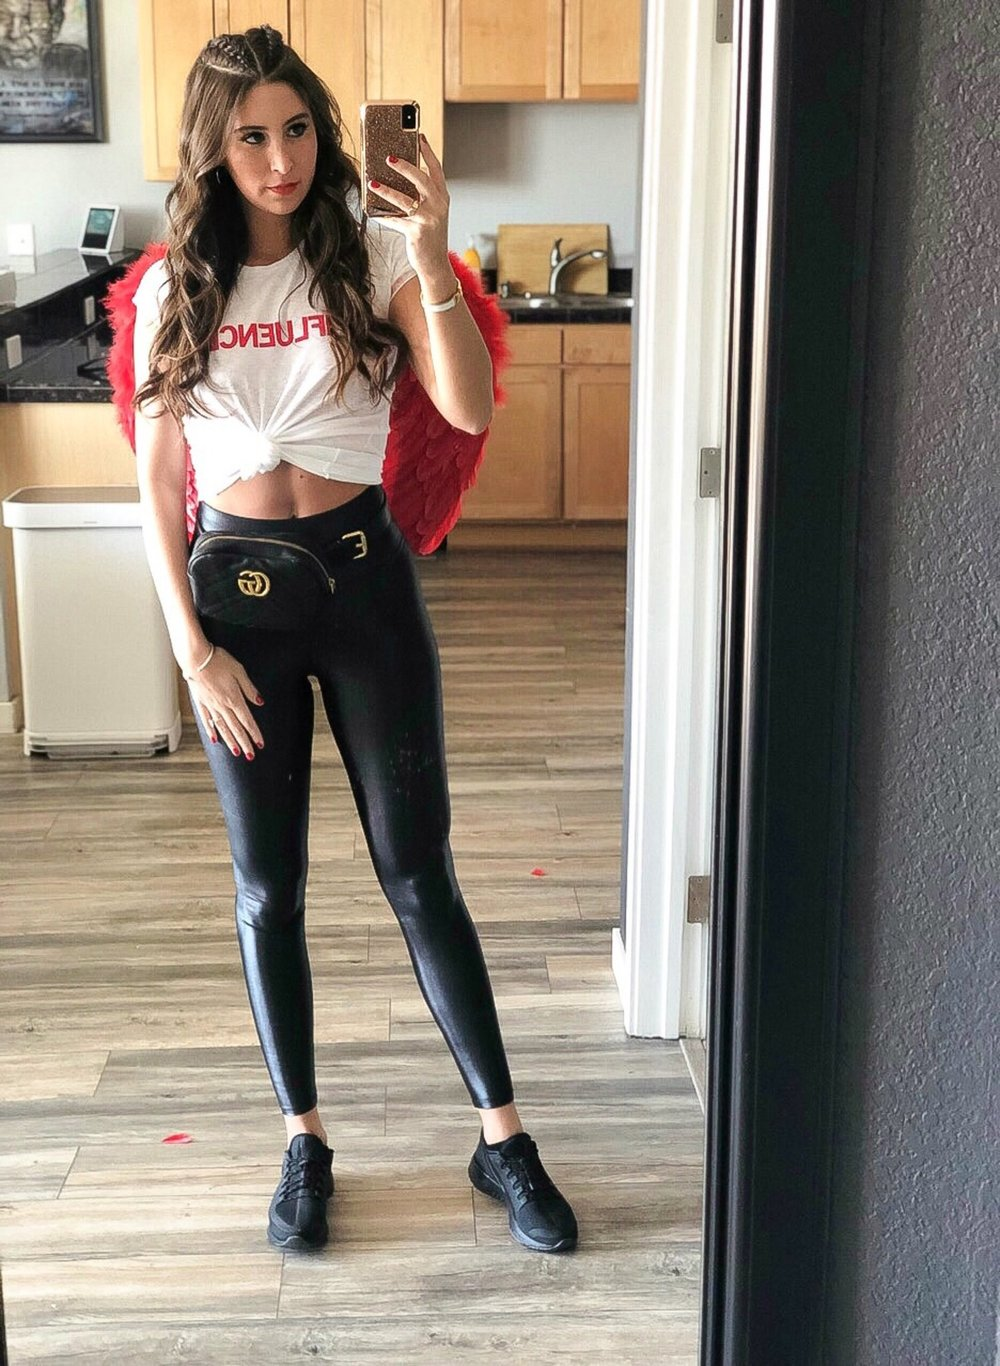 OOTD - Occasion: Cupid's Undie RunFebruary 2019Outfit Details:Influencer ShirtCarbon38 High Waisted Takara Legging (Size down! Normally I wear mediums but these in a small fit perfectly)Gucci Belt BagNike Odyssey React Shield